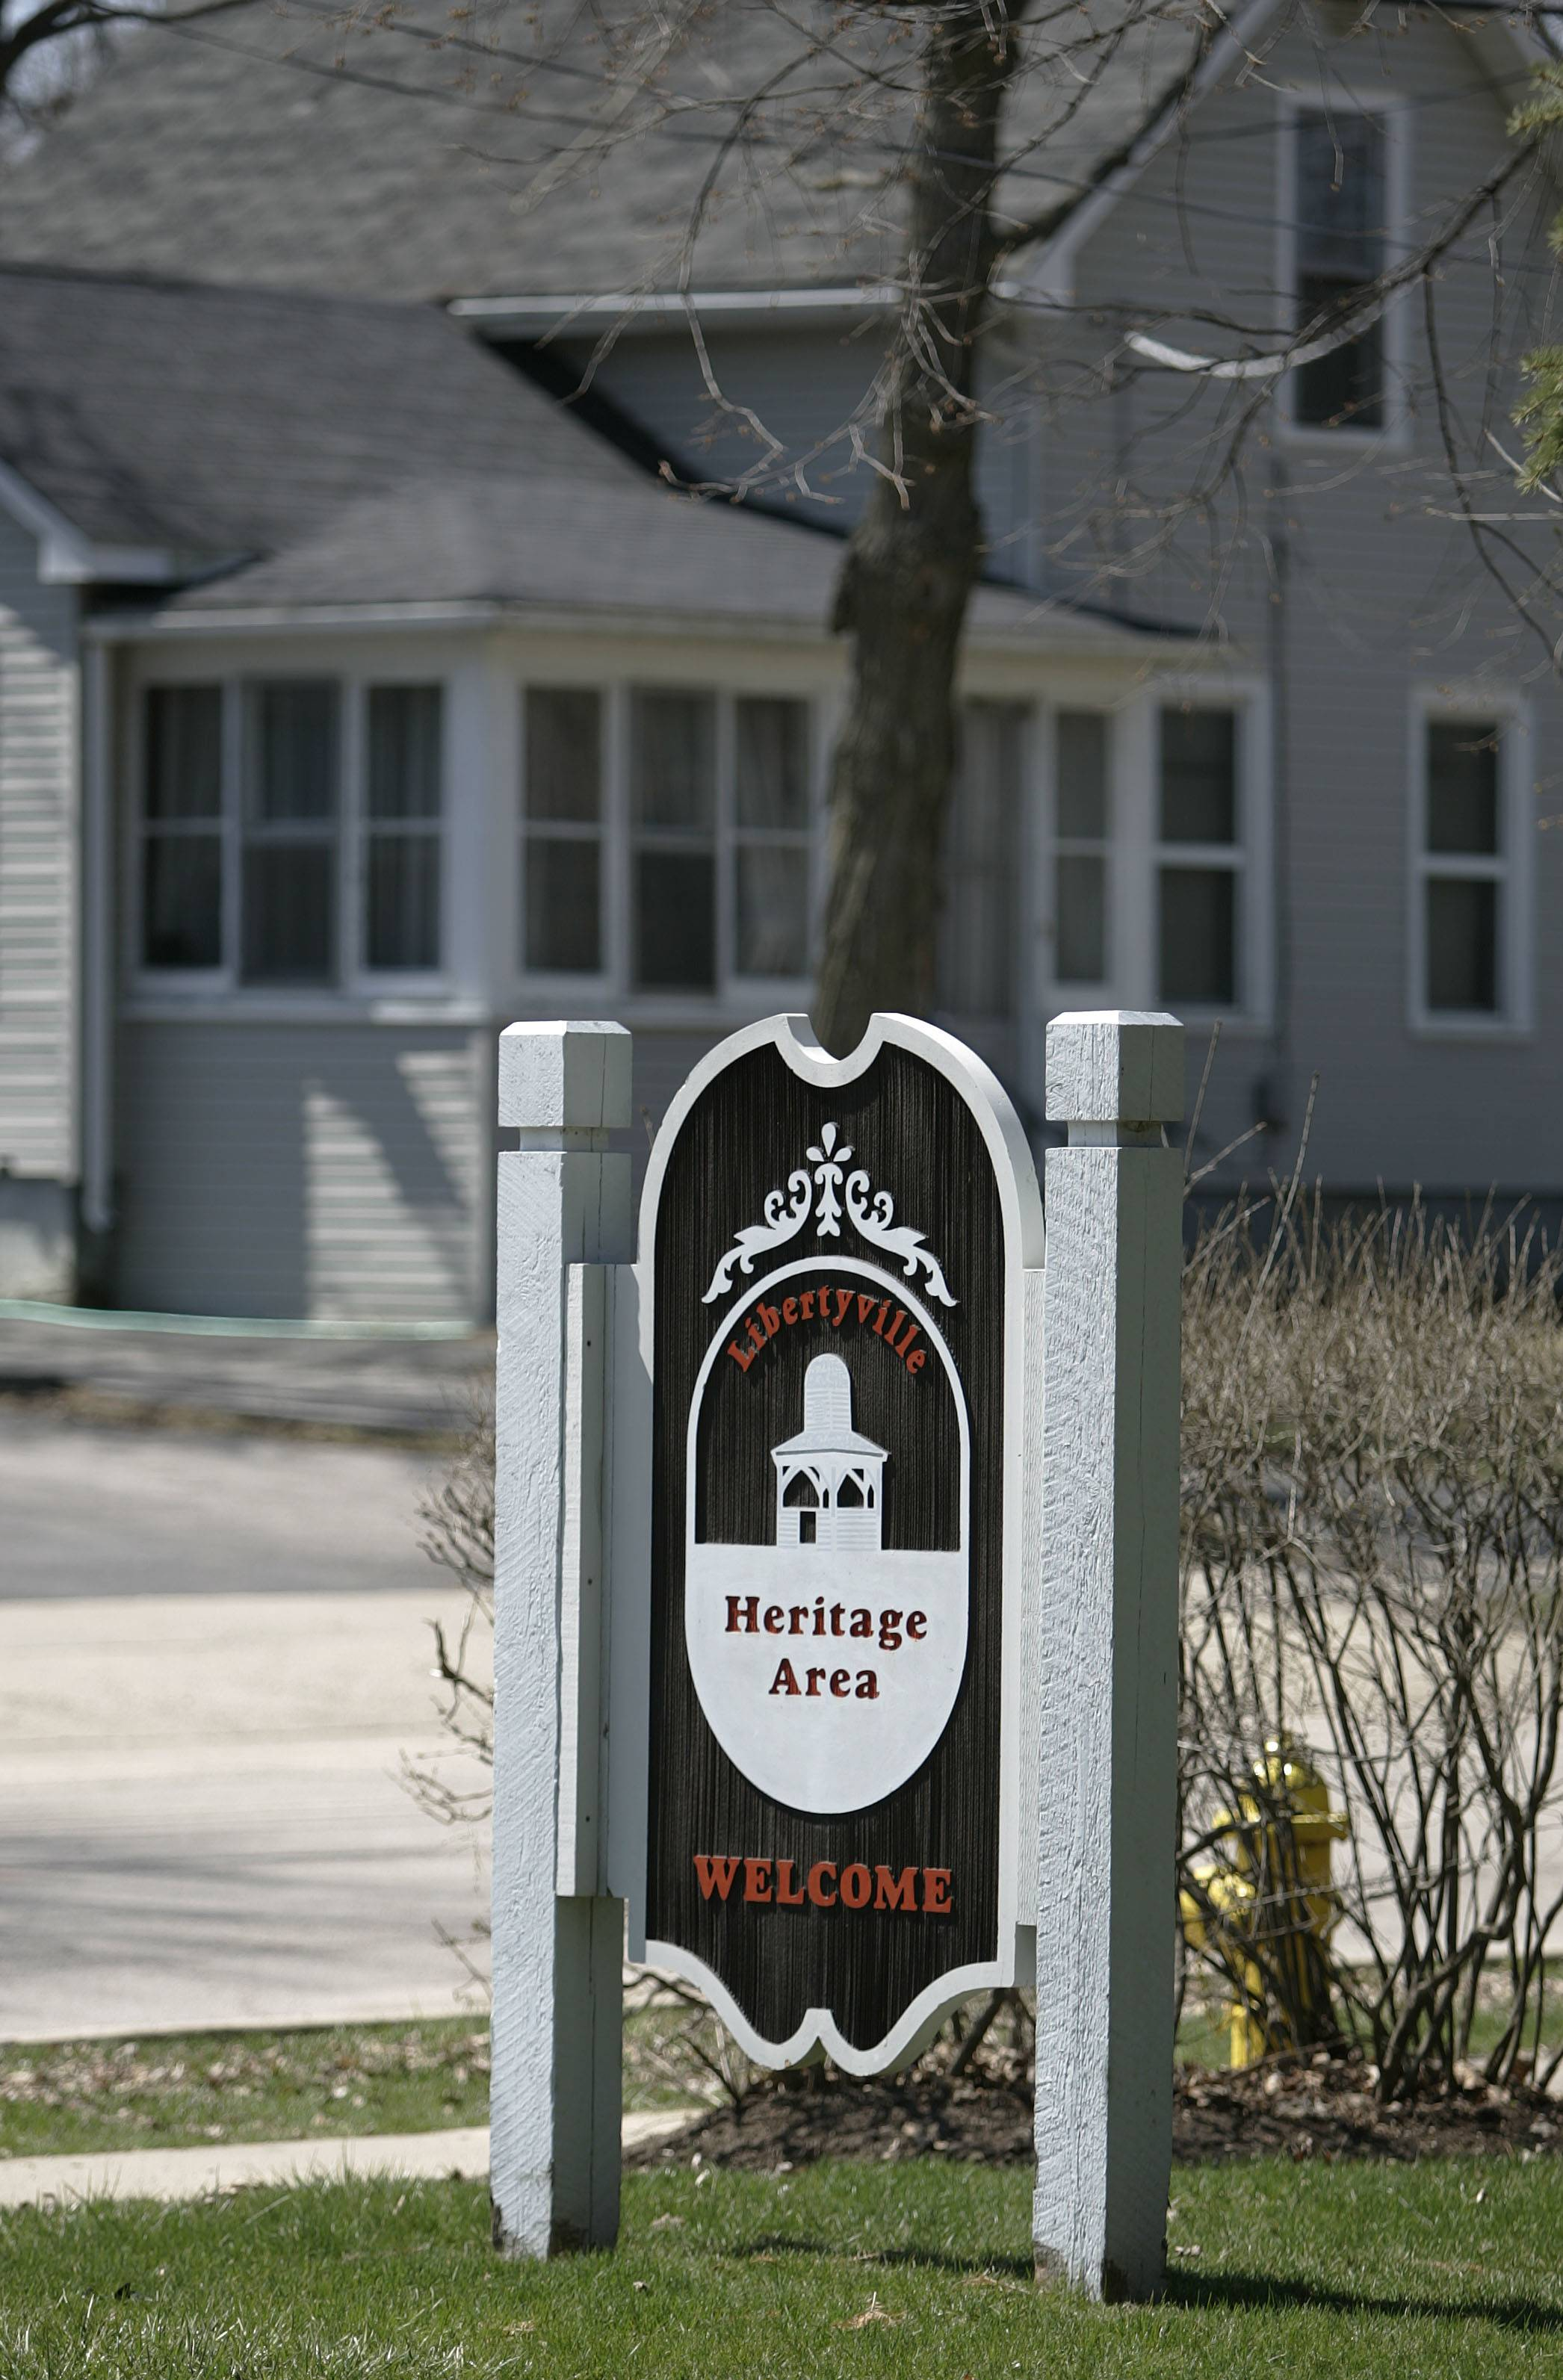 Libertyville's Heritage Area near downtown.